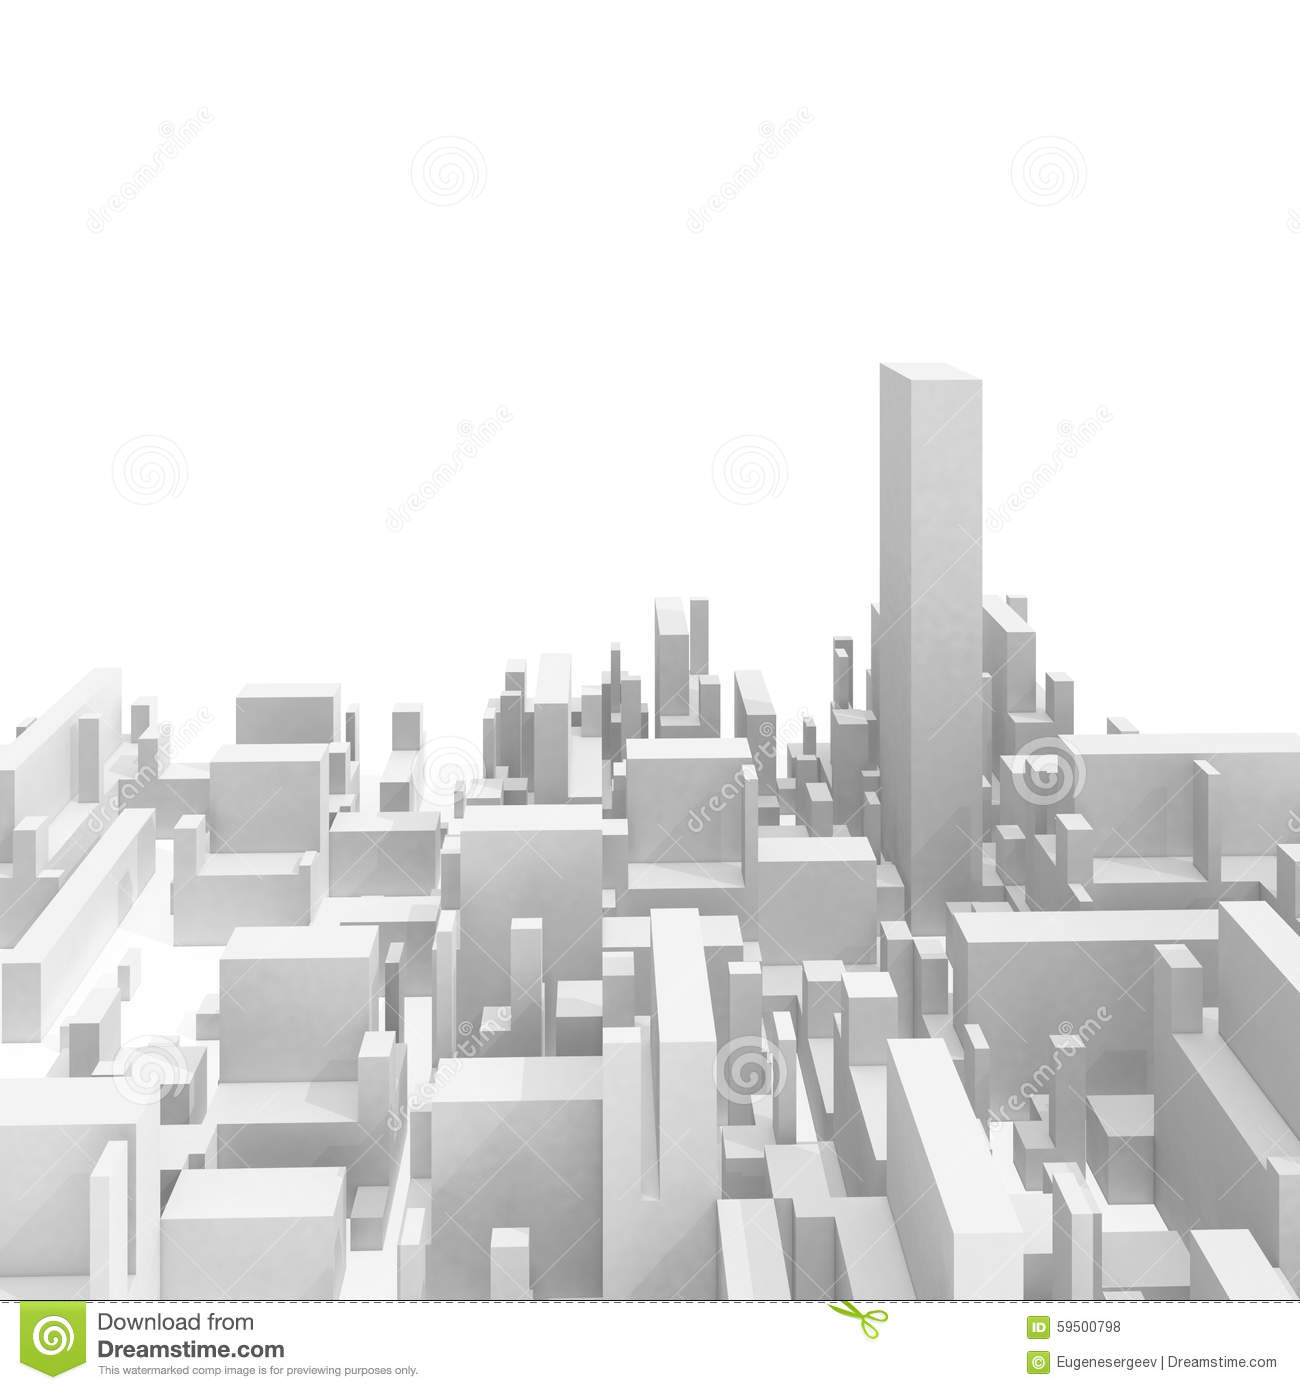 Abstract schematic white 3d cityscape skyline